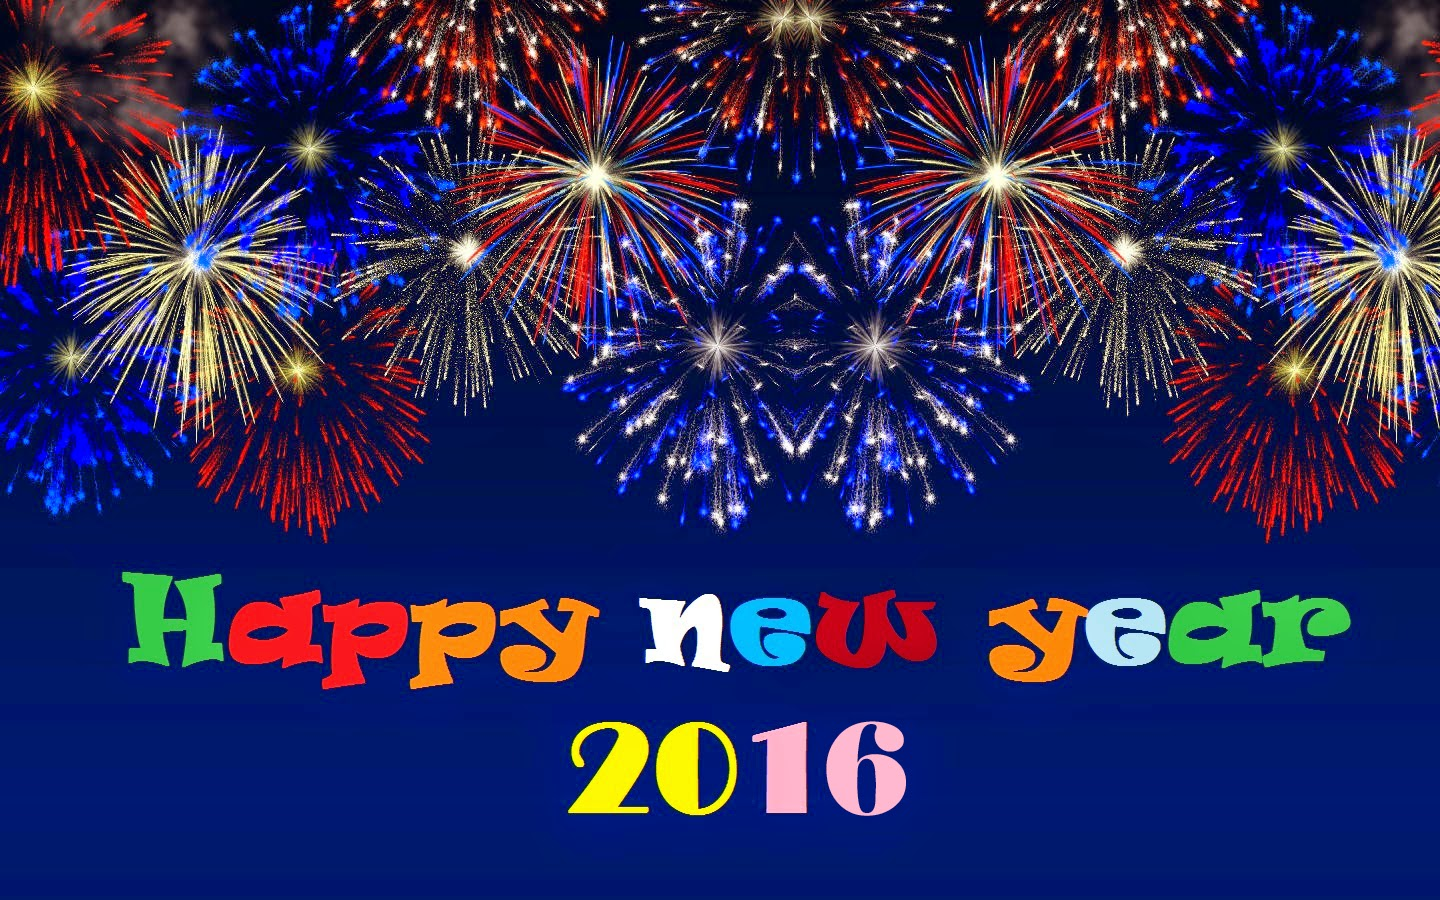 Happy-New-Year-2015-Wallpaper-3d-22%2Bcopy